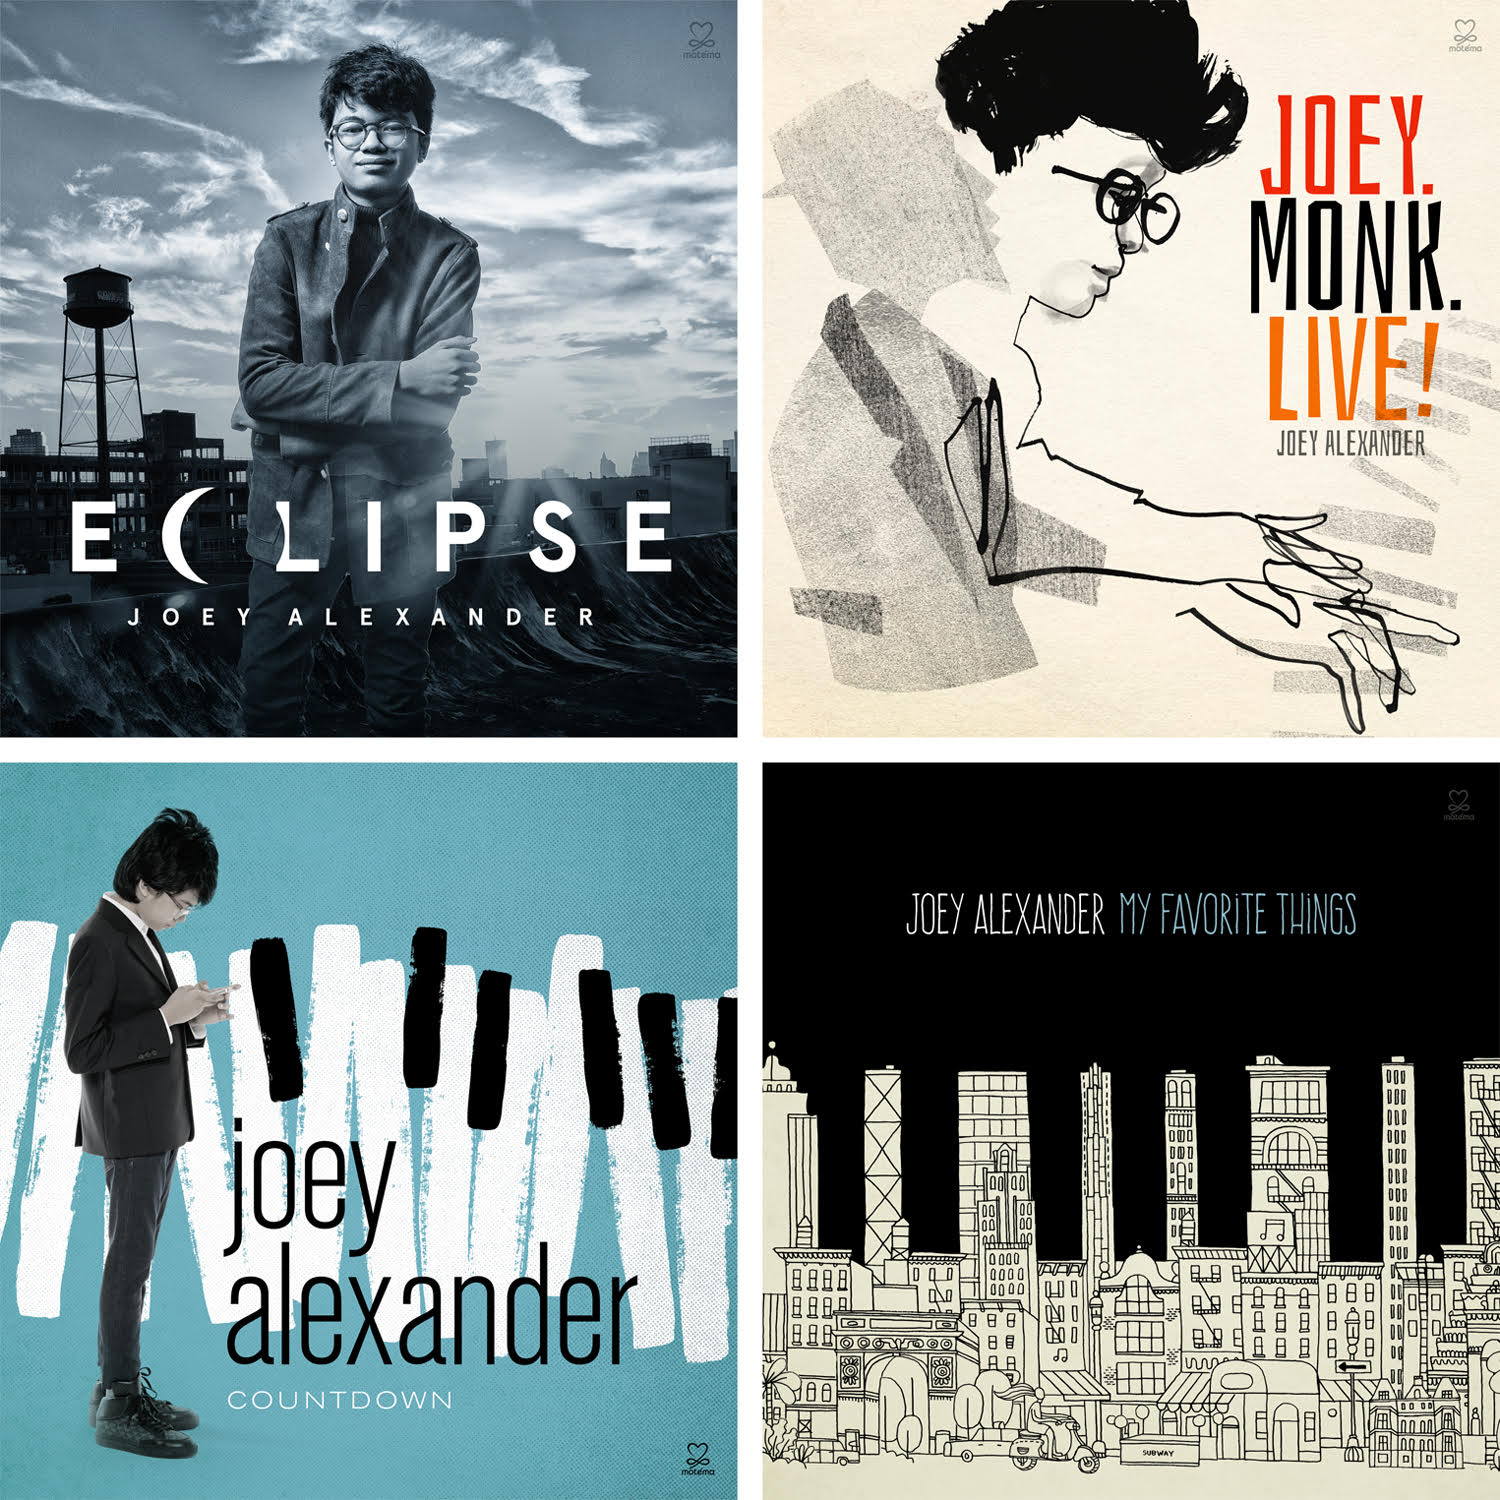 Joey Alexander - All 4 Joey CDs in one bundled package